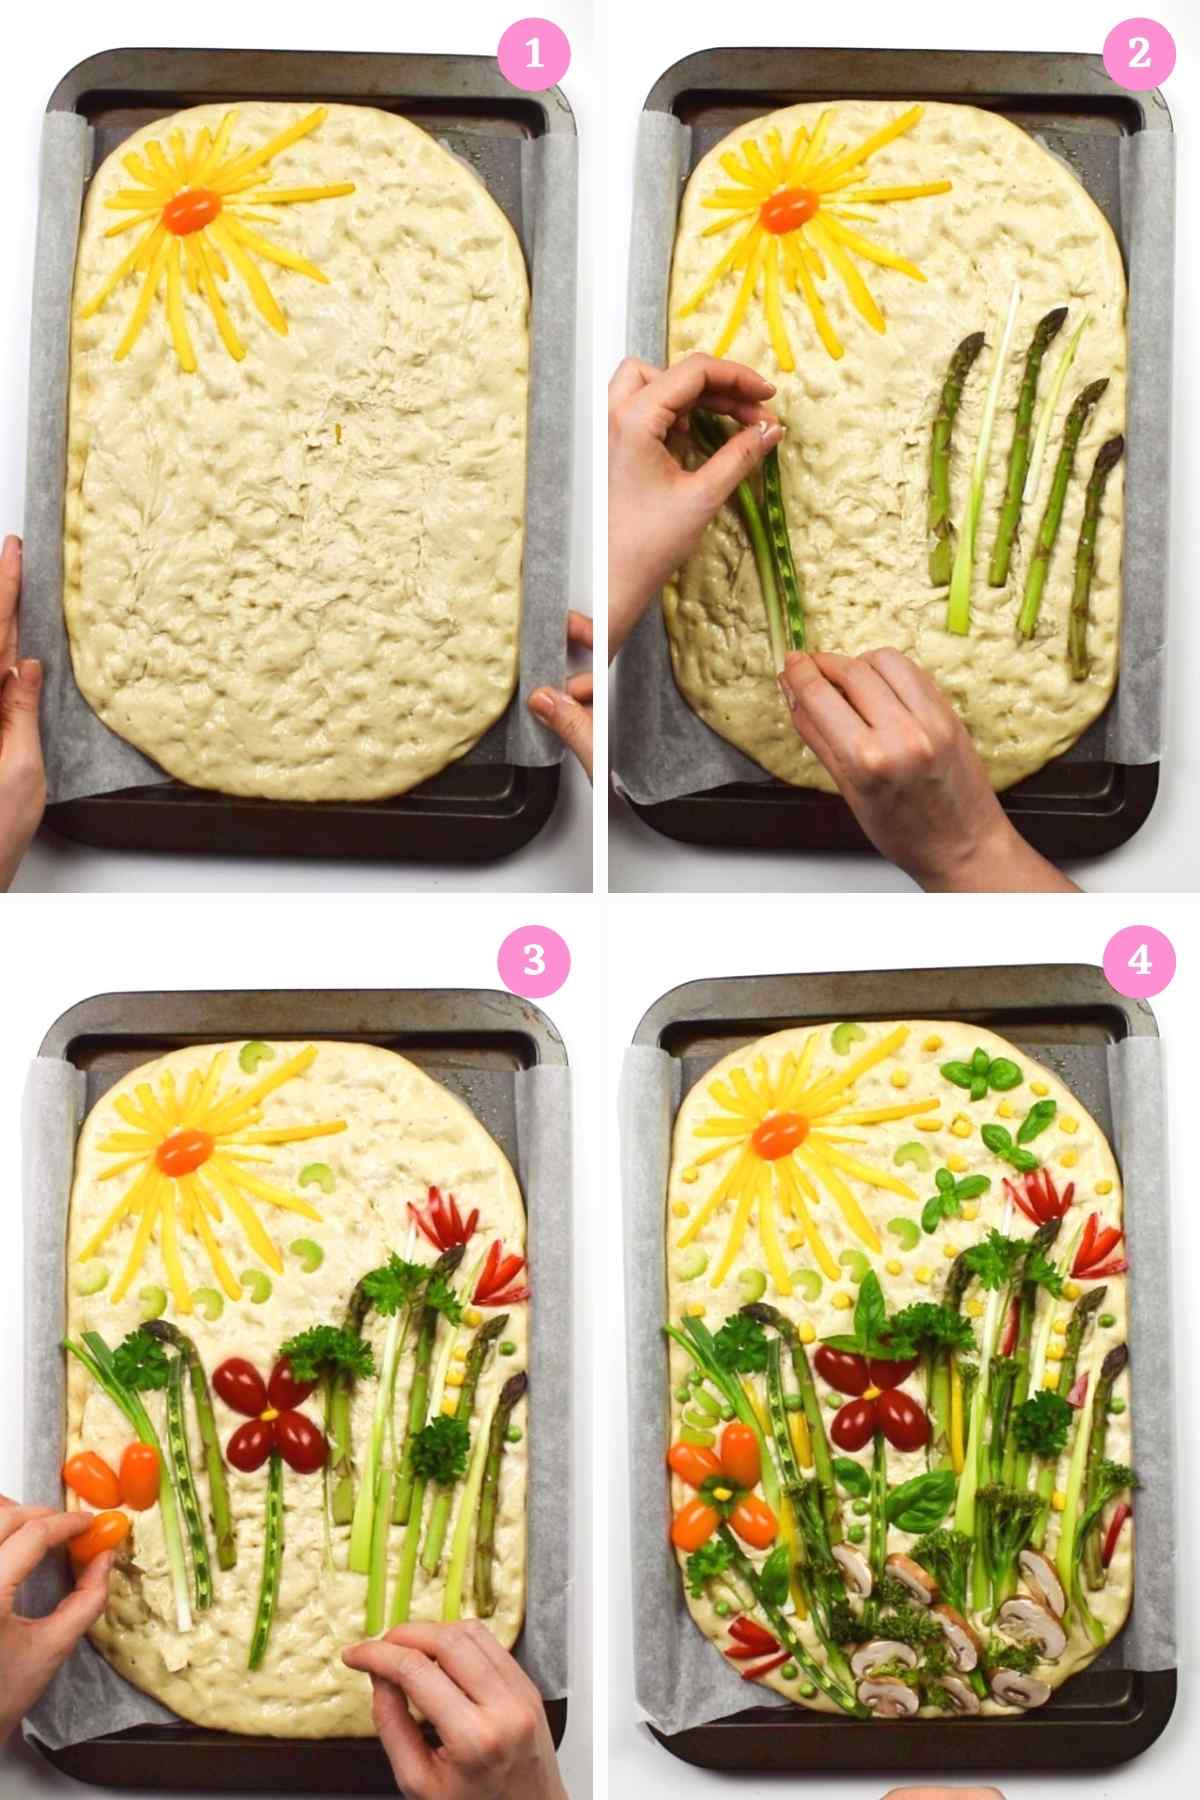 Collage of 4 images showing how to decorate focaccia art